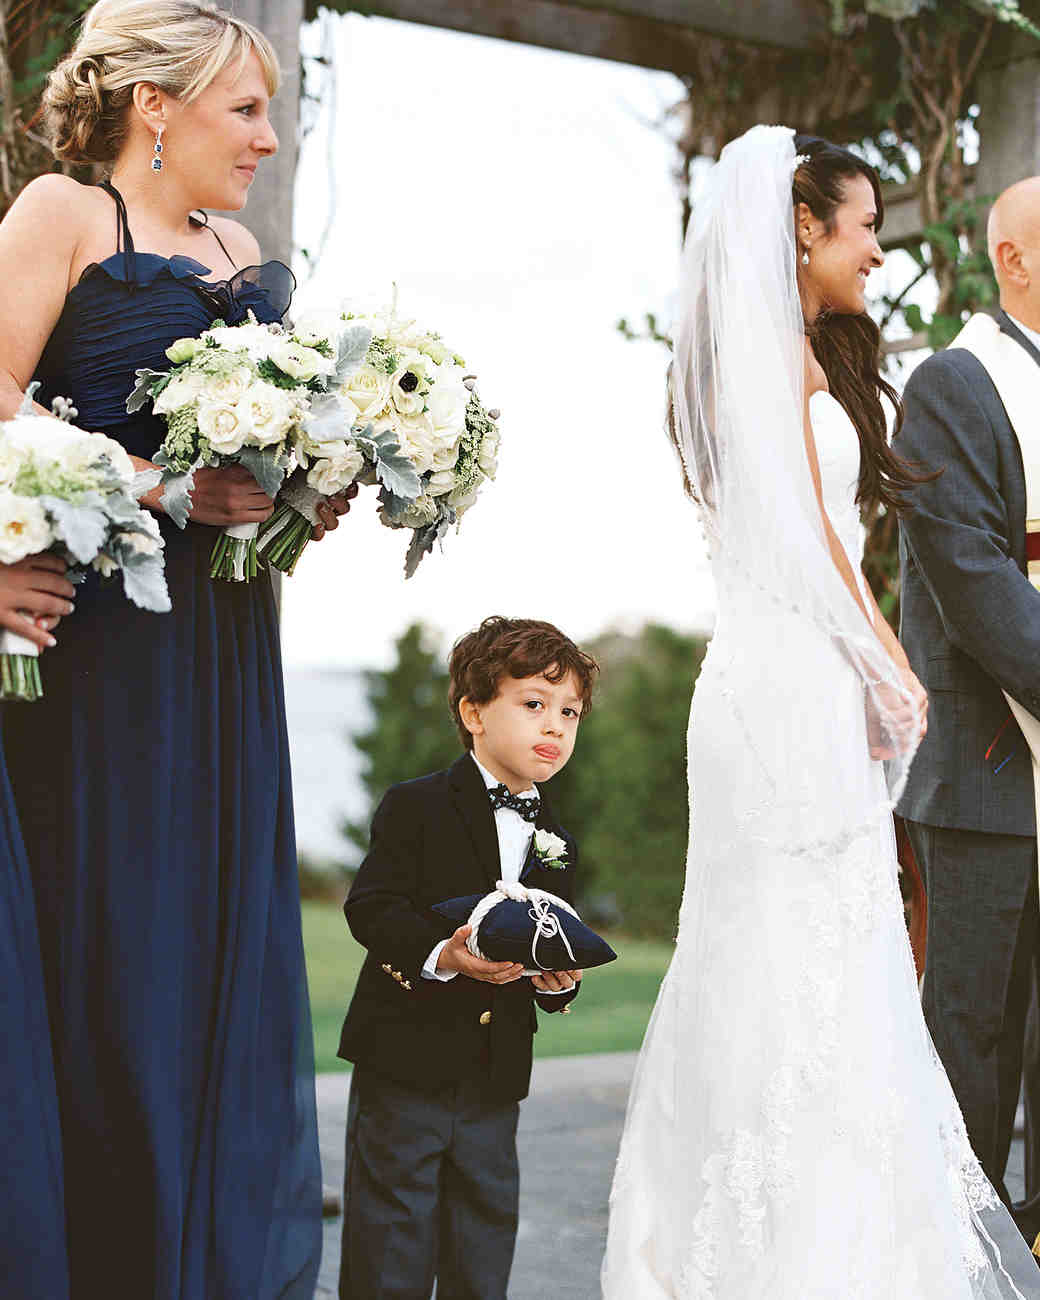 wedding-party-ring-bearer-boy-bride-bridesmaid-dsc-289-mwds110870.jpg